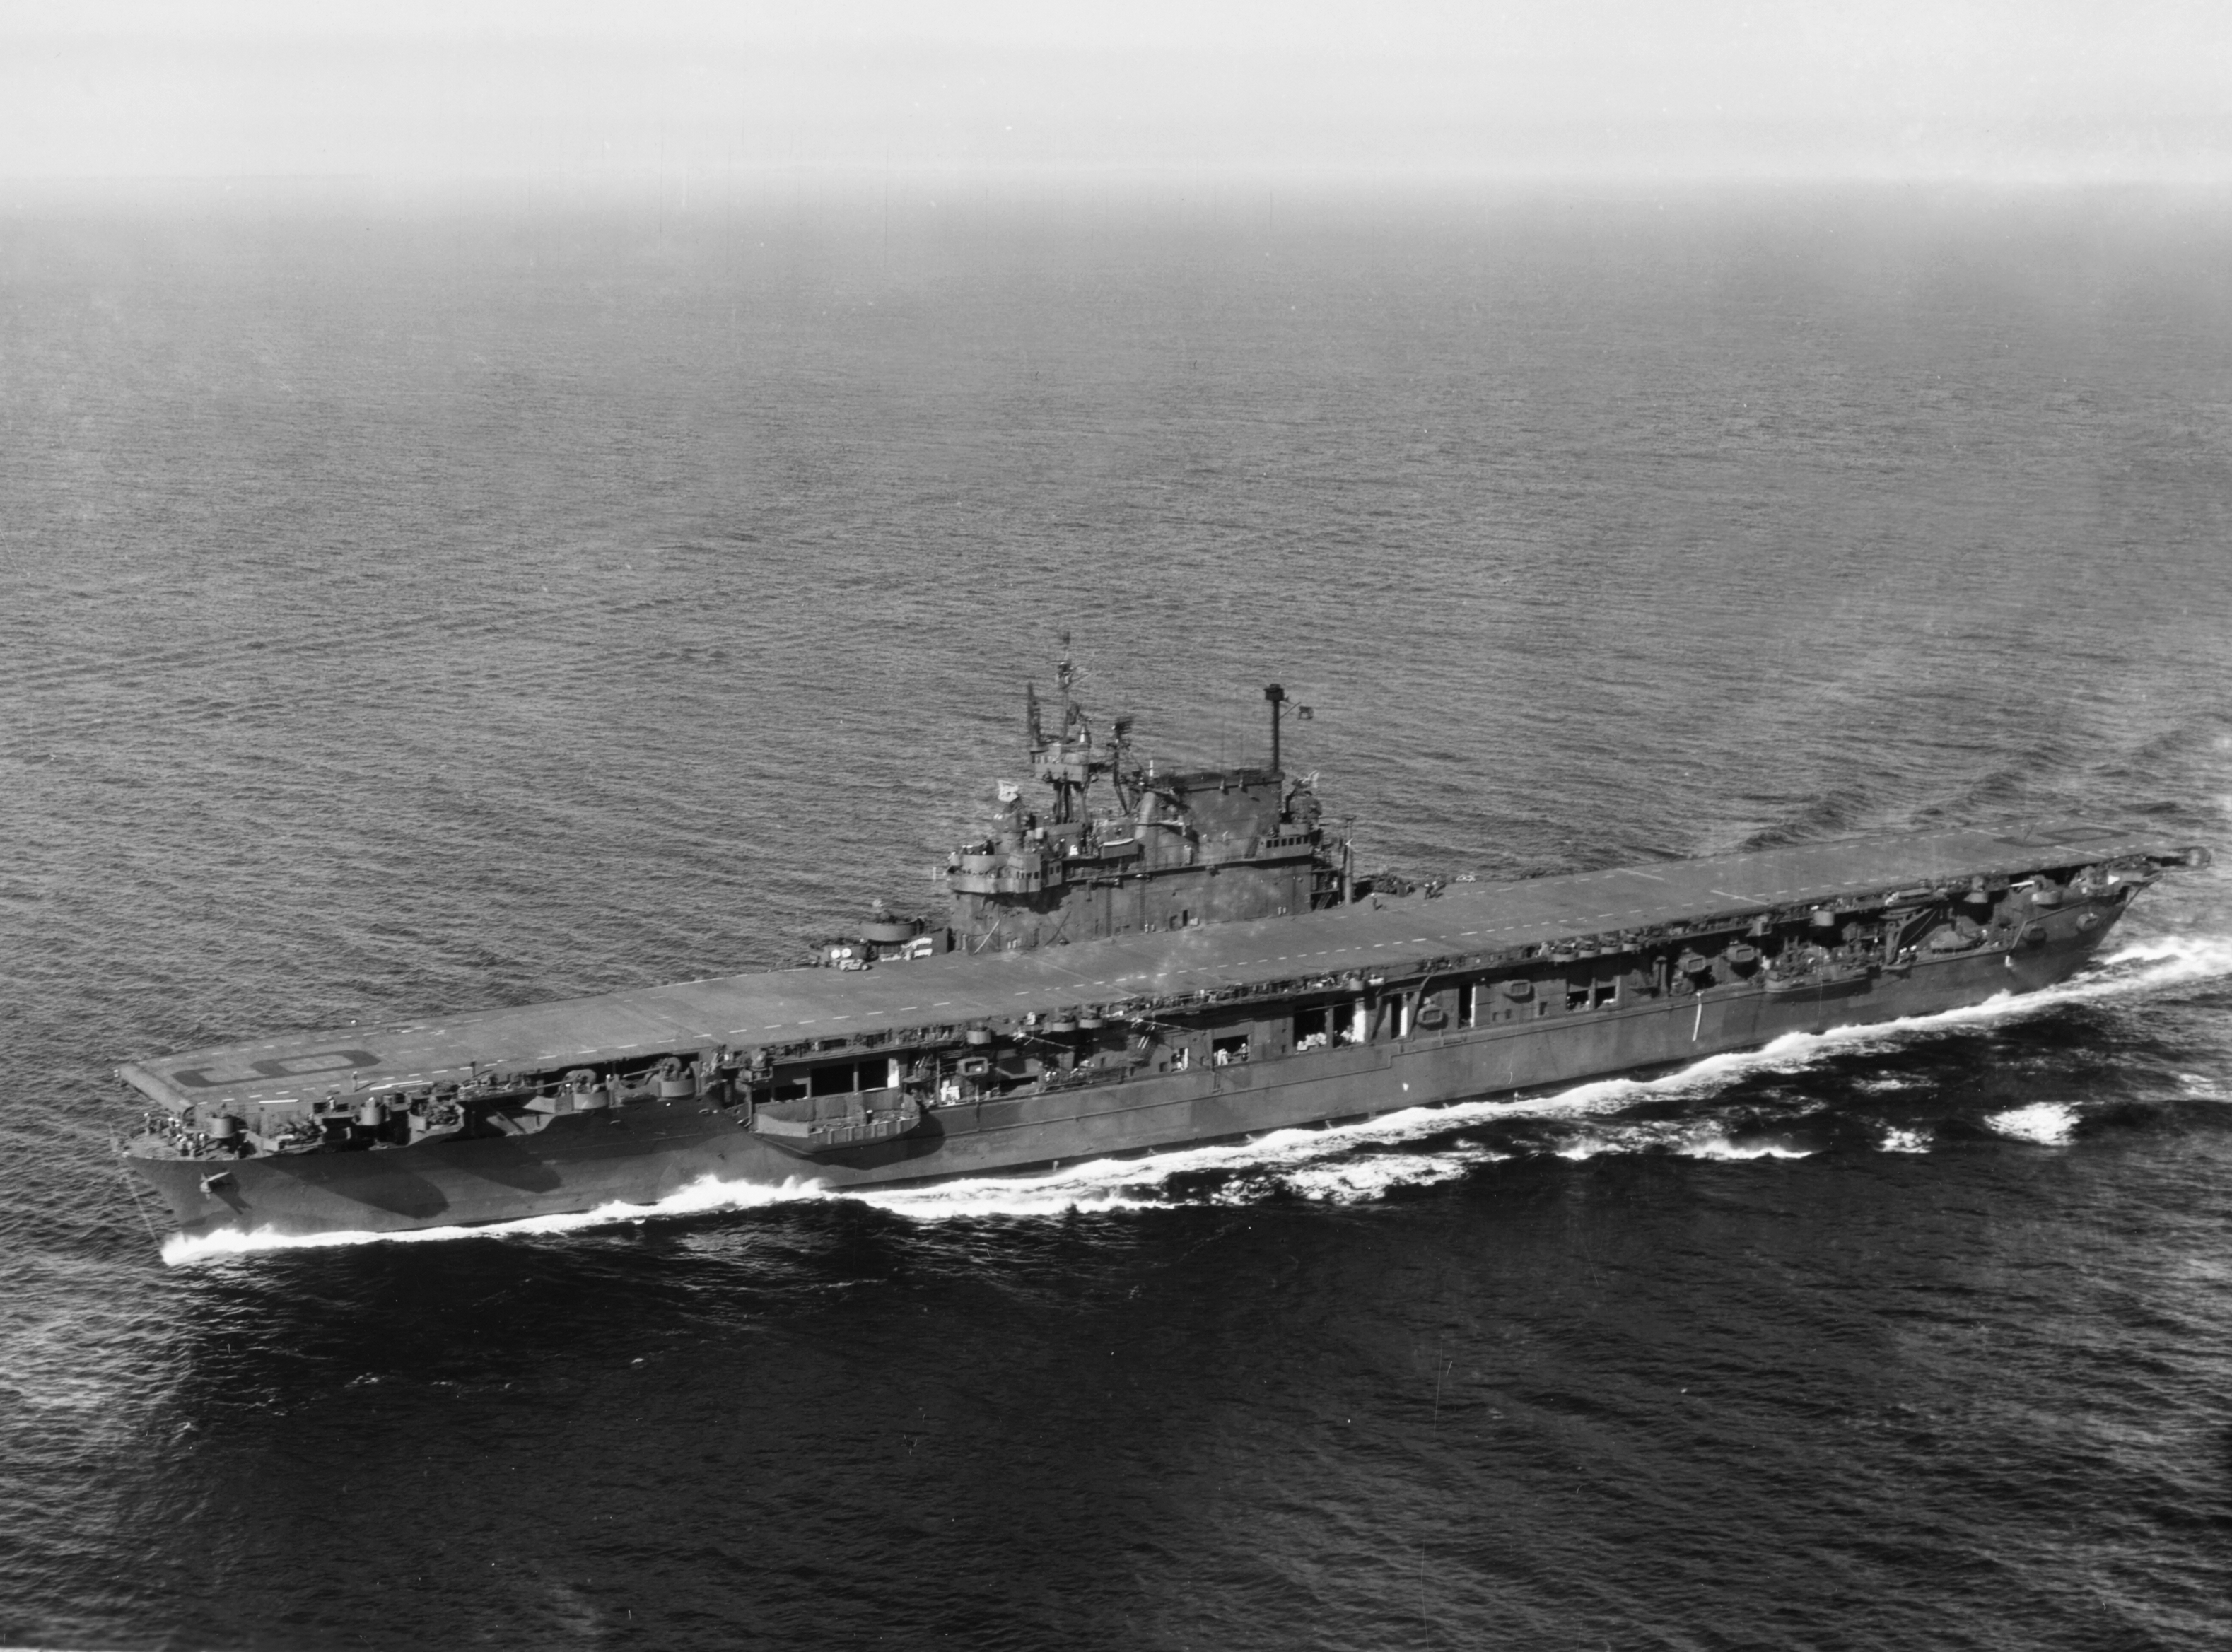 http://upload.wikimedia.org/wikipedia/commons/8/87/USS_Enterprise_%28CV-6%29_in_Puget_Sound%2C_September_1945.jpg